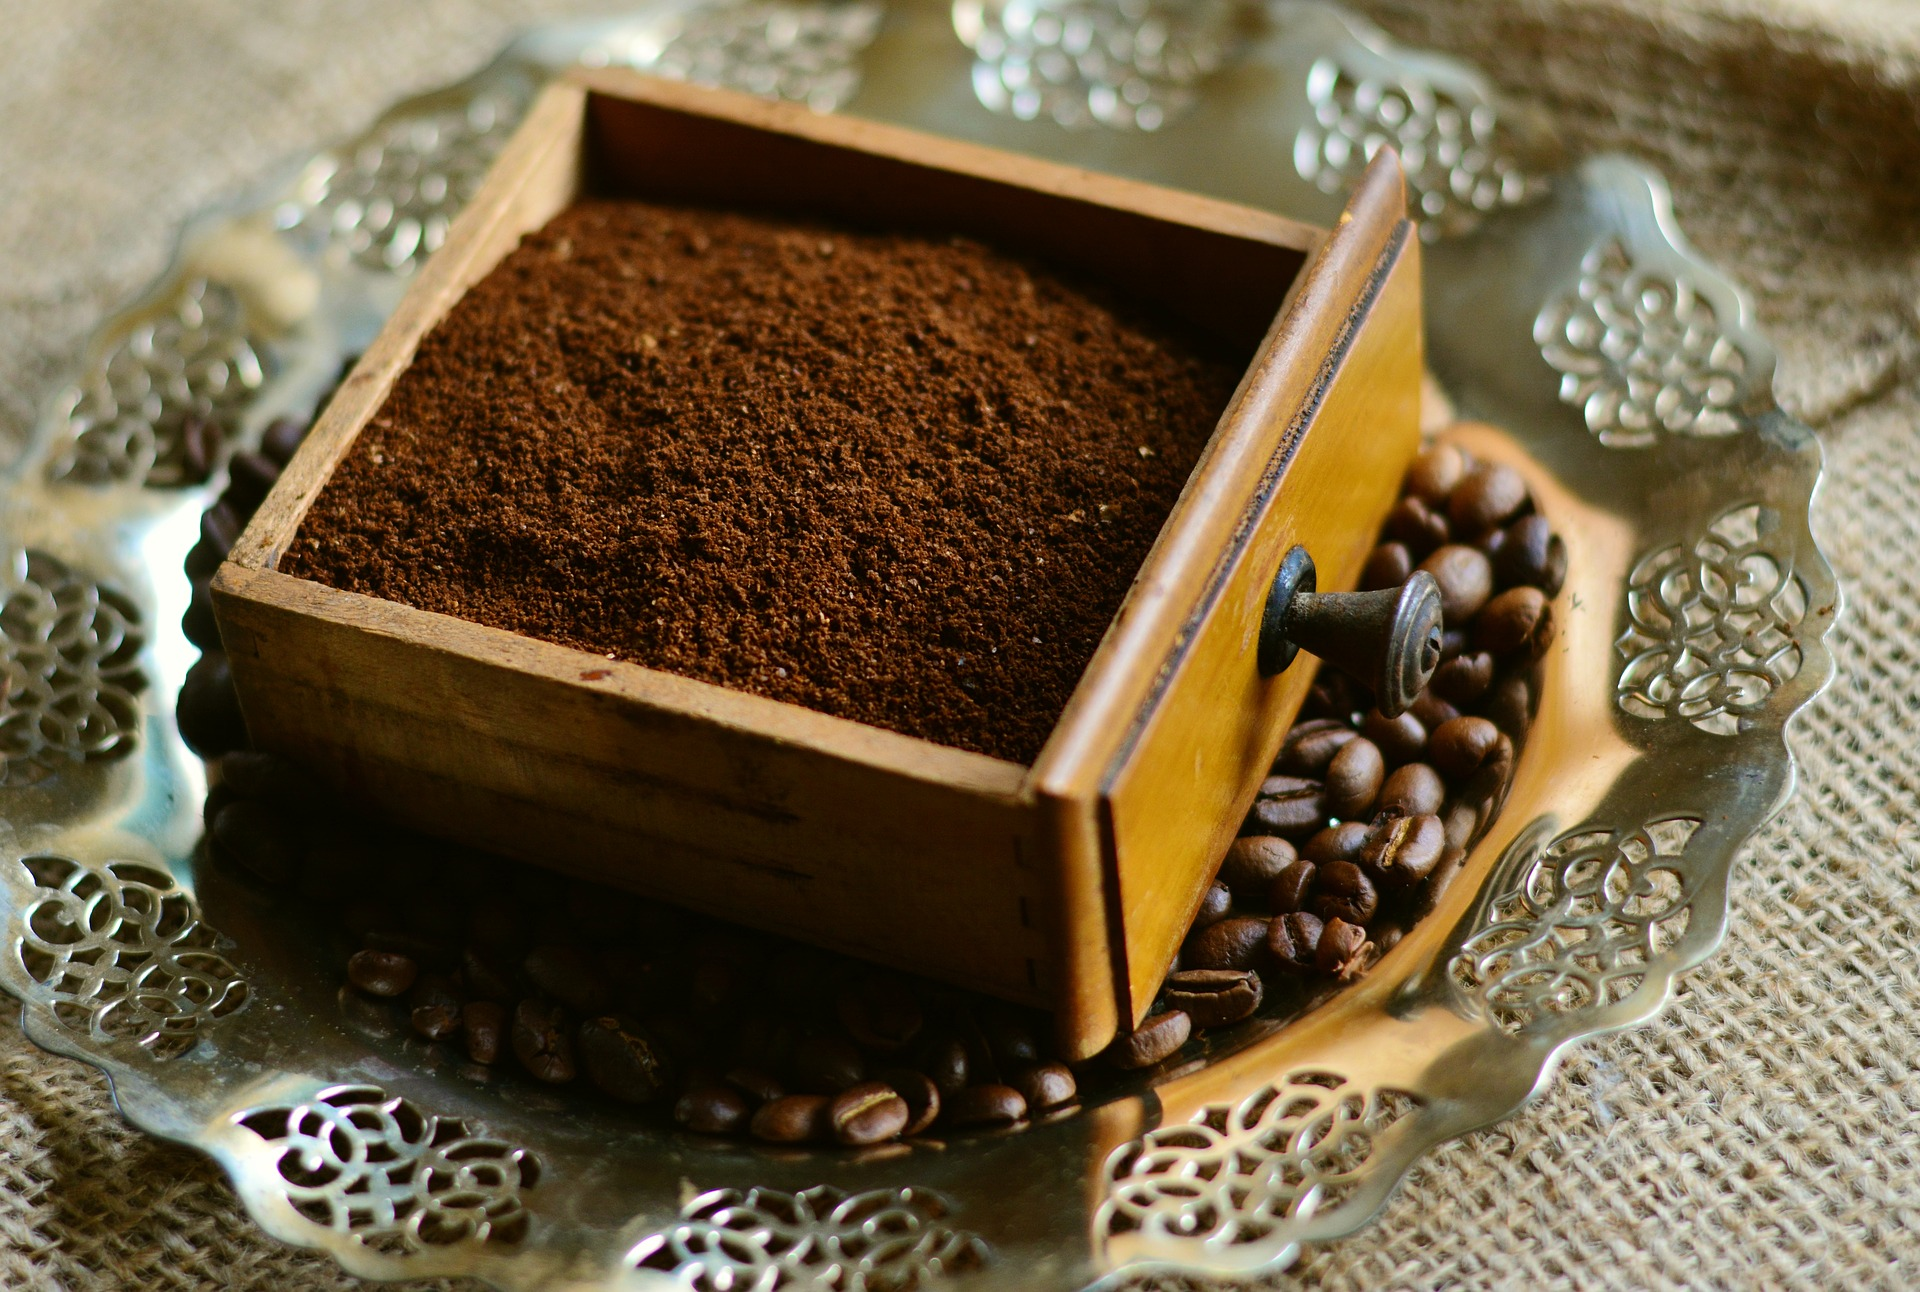 5 Great Ways To Recycle Your Coffee Grounds - Rubbish Taxi